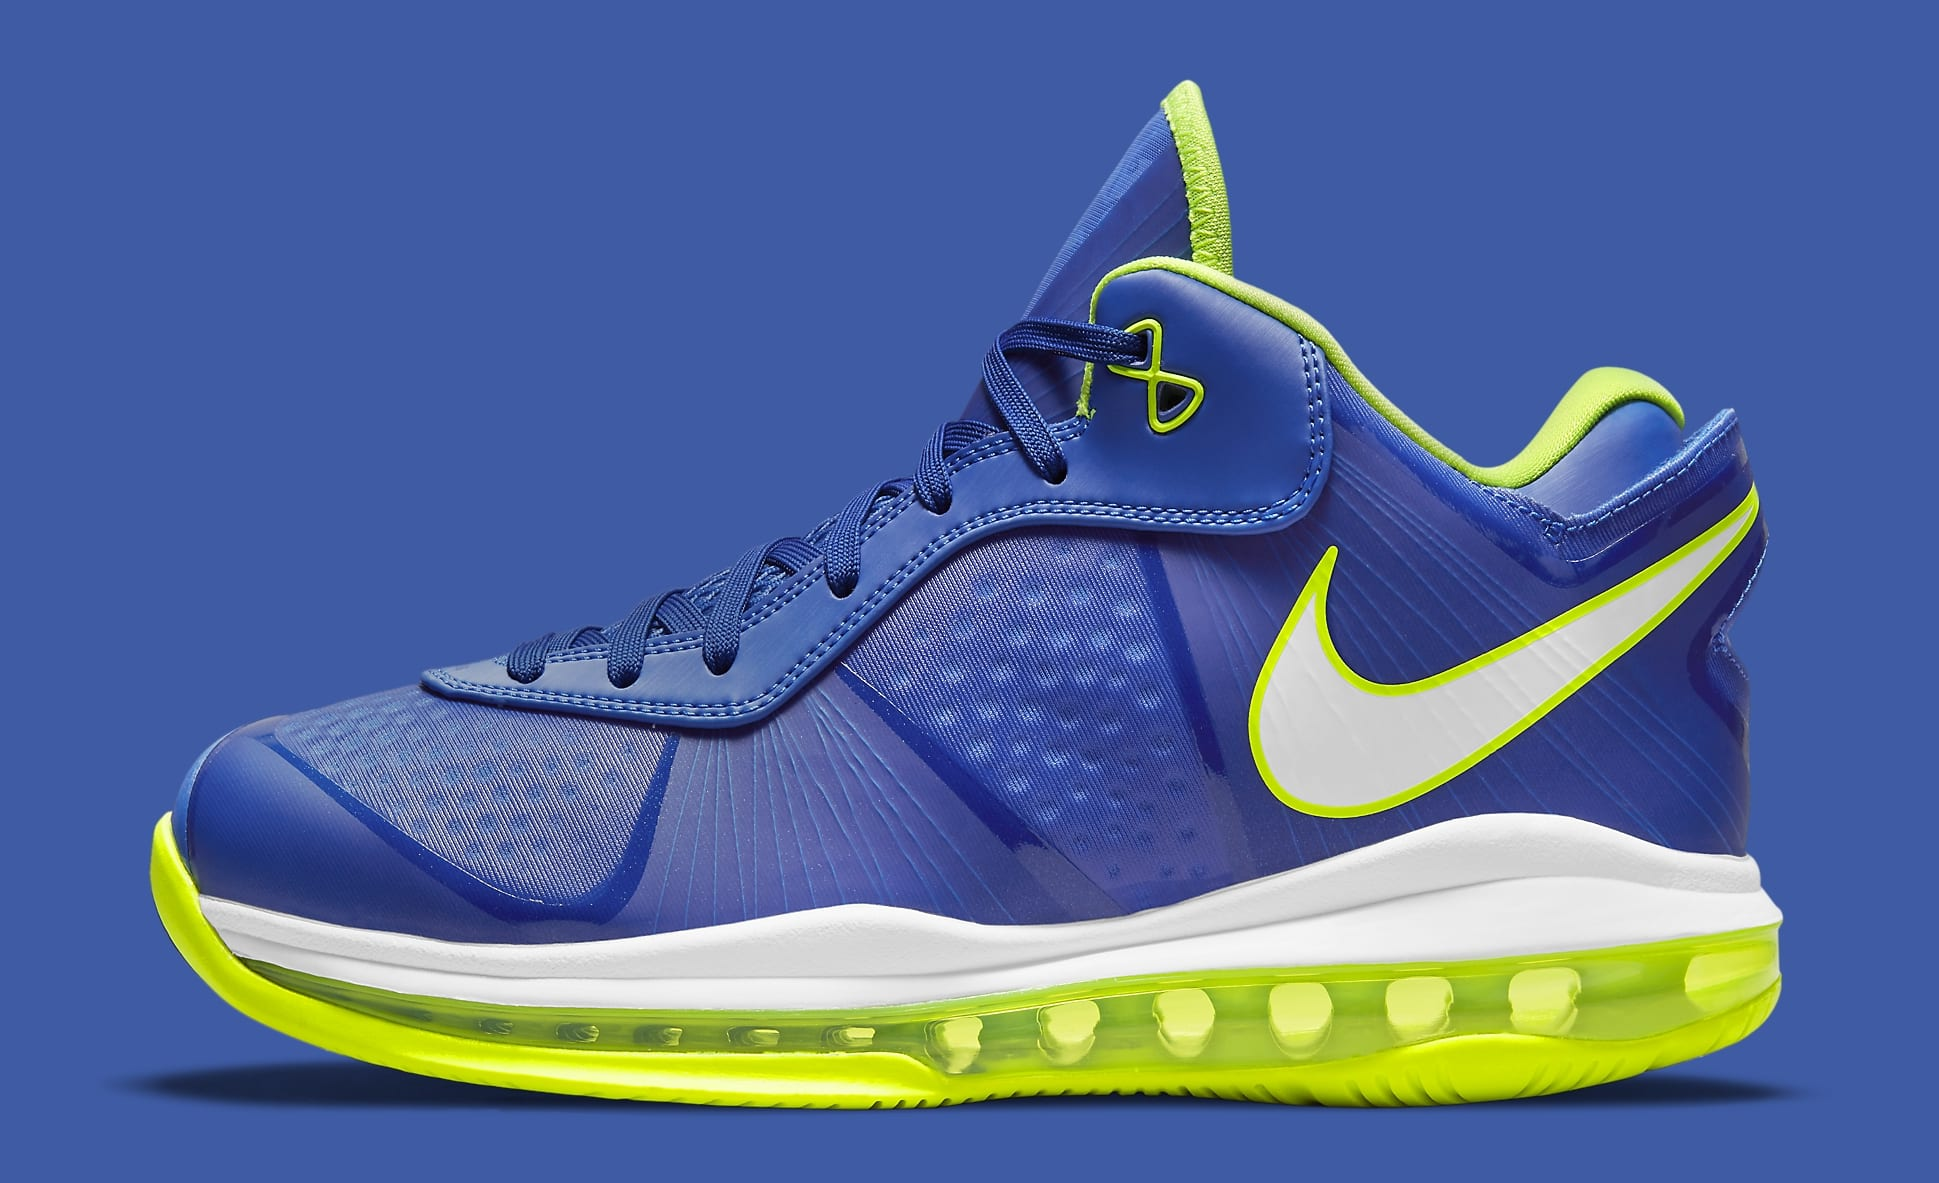 Nike LeBron 8 Low 'Sprite' 2021 DN1581-400 Lateral